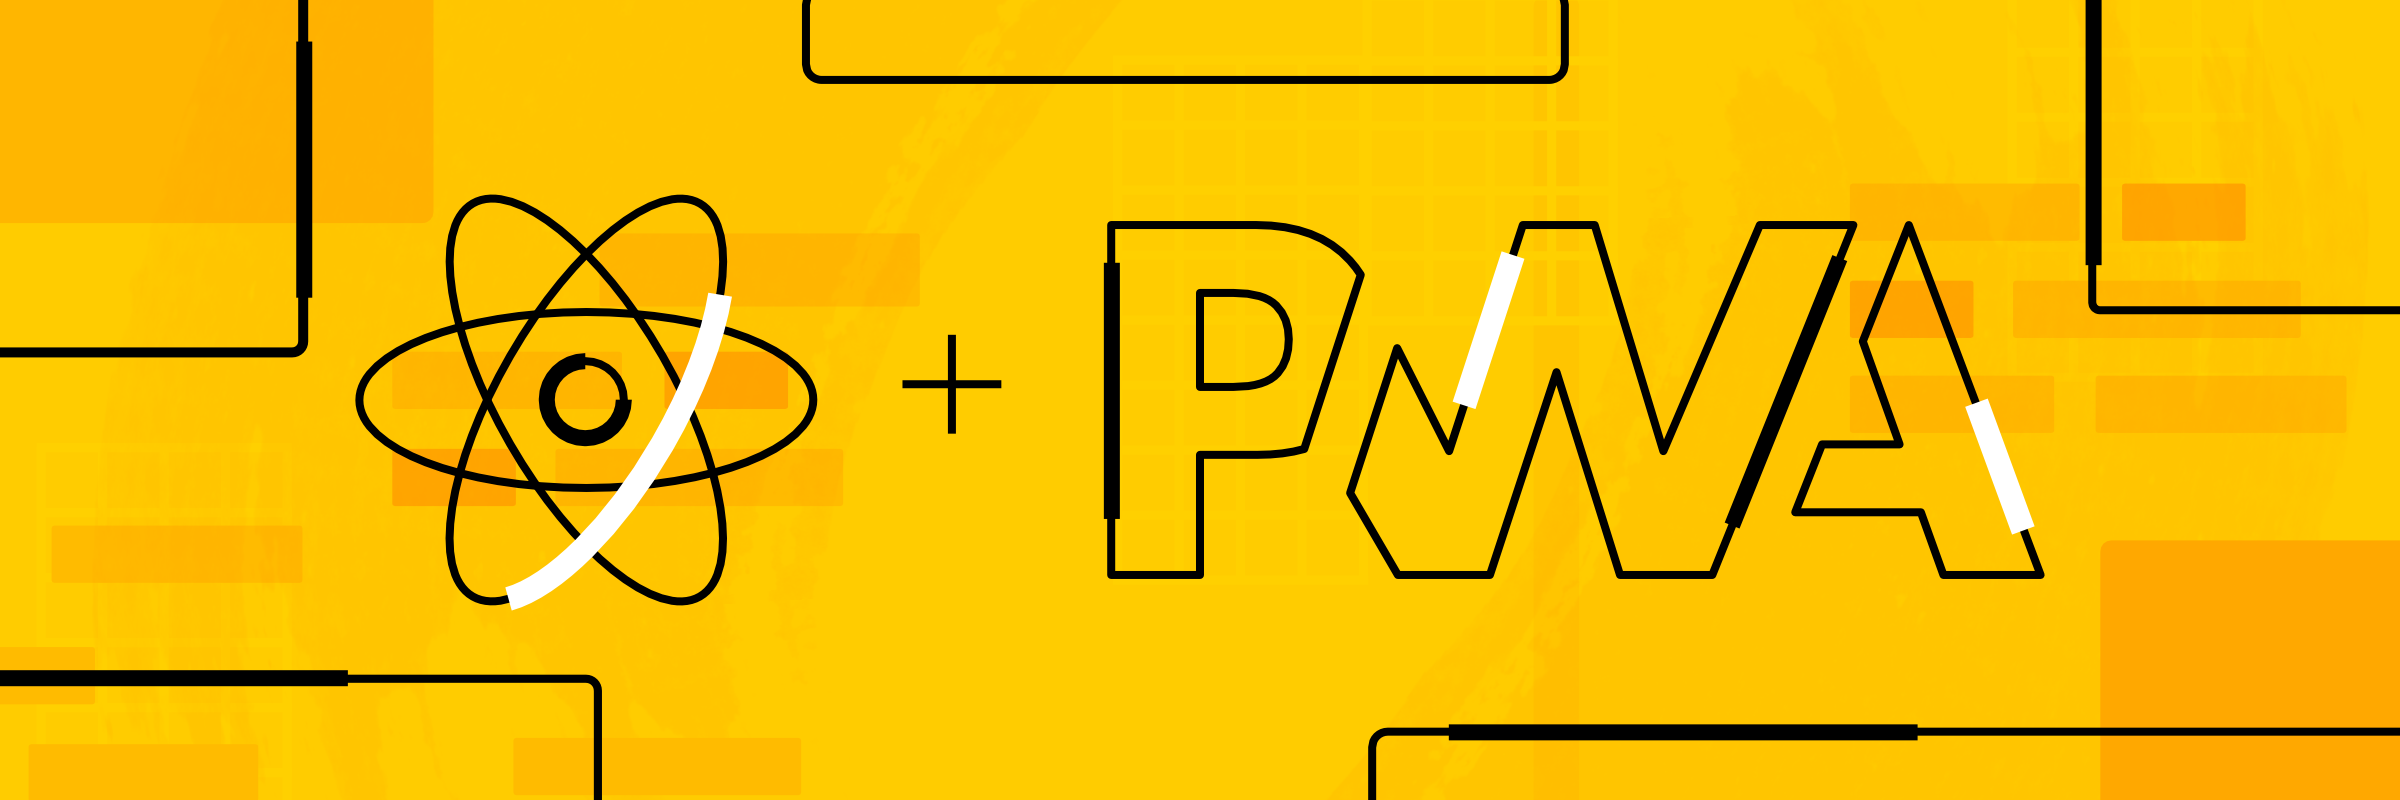 How to Build and Deploy Superheroes React PWA Using Buddy